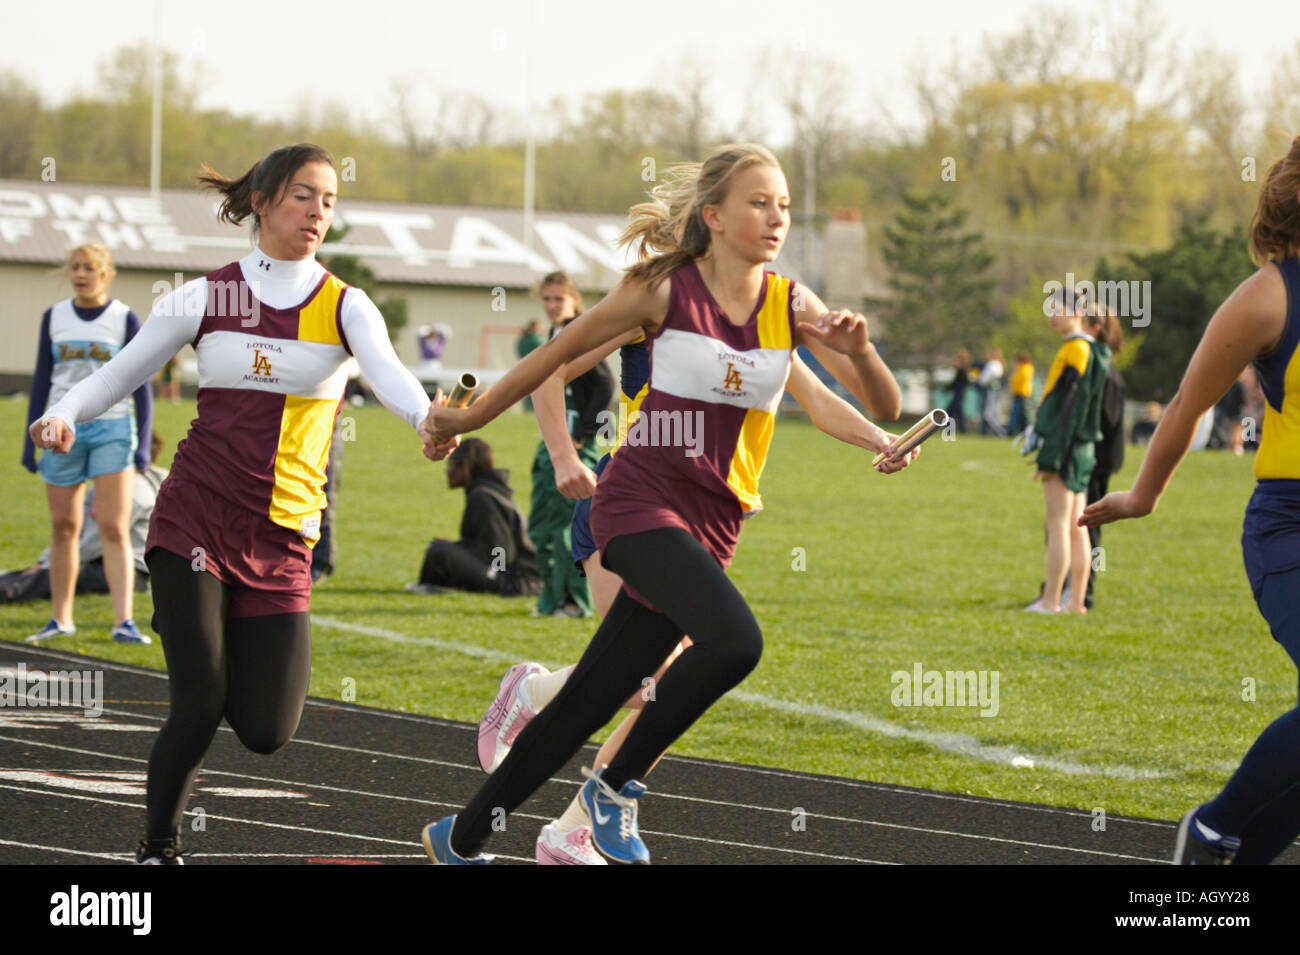 TRACK Glenview Illinois Baton handoff for female relay team high school girls track meet - Stock Image